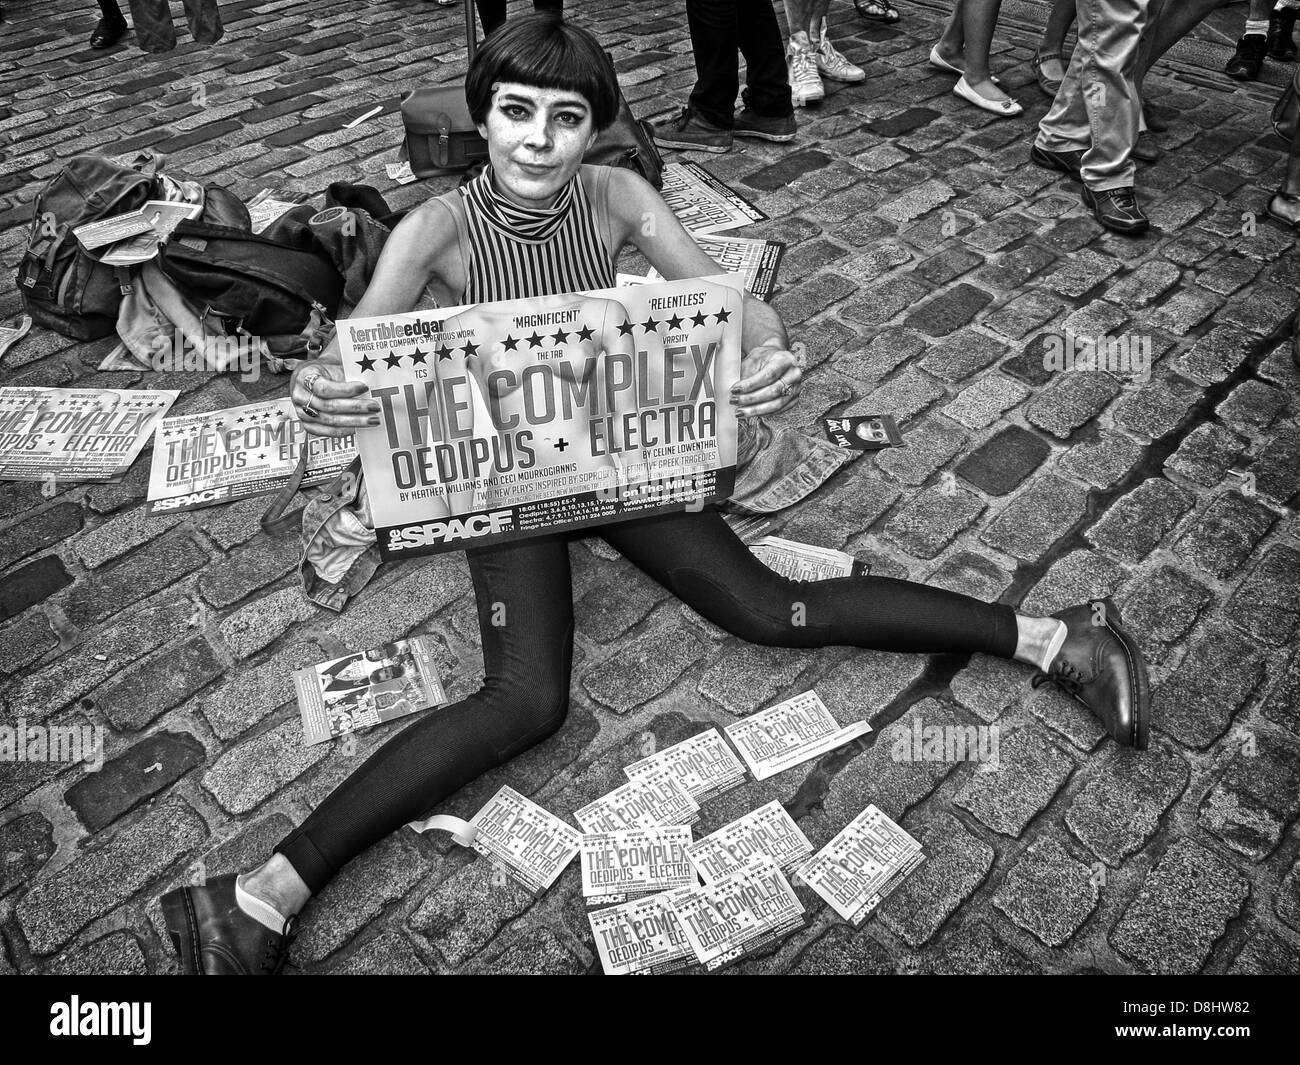 Edinburgh Festival Fringe Act, Scotland, UK, EH1 1QS - Stock Image